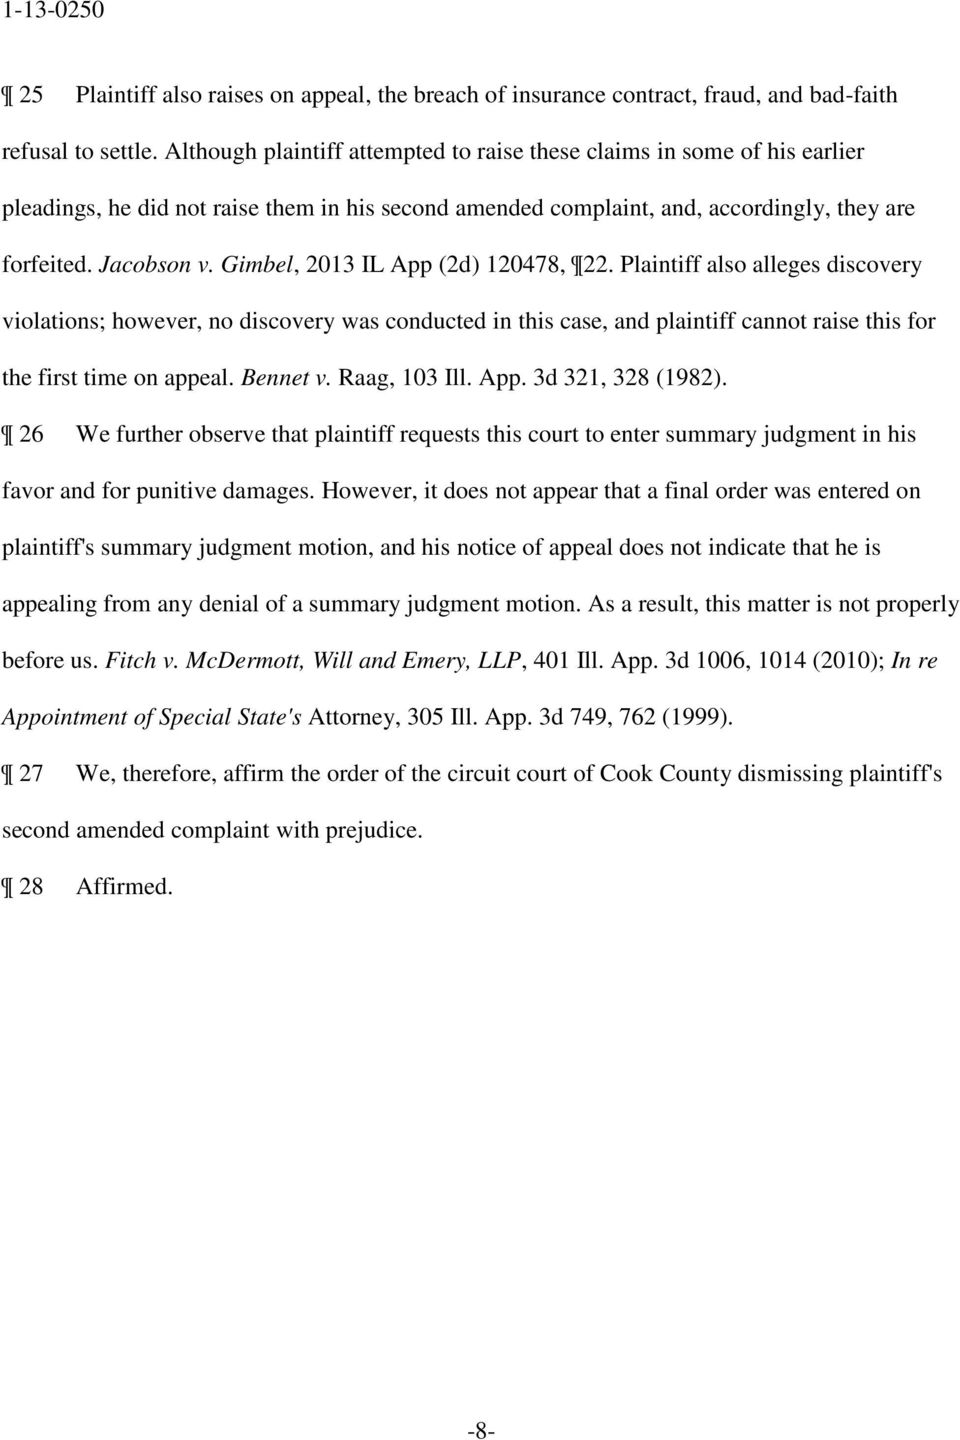 Gimbel, 2013 IL App (2d) 120478, 22. Plaintiff also alleges discovery violations; however, no discovery was conducted in this case, and plaintiff cannot raise this for the first time on appeal.